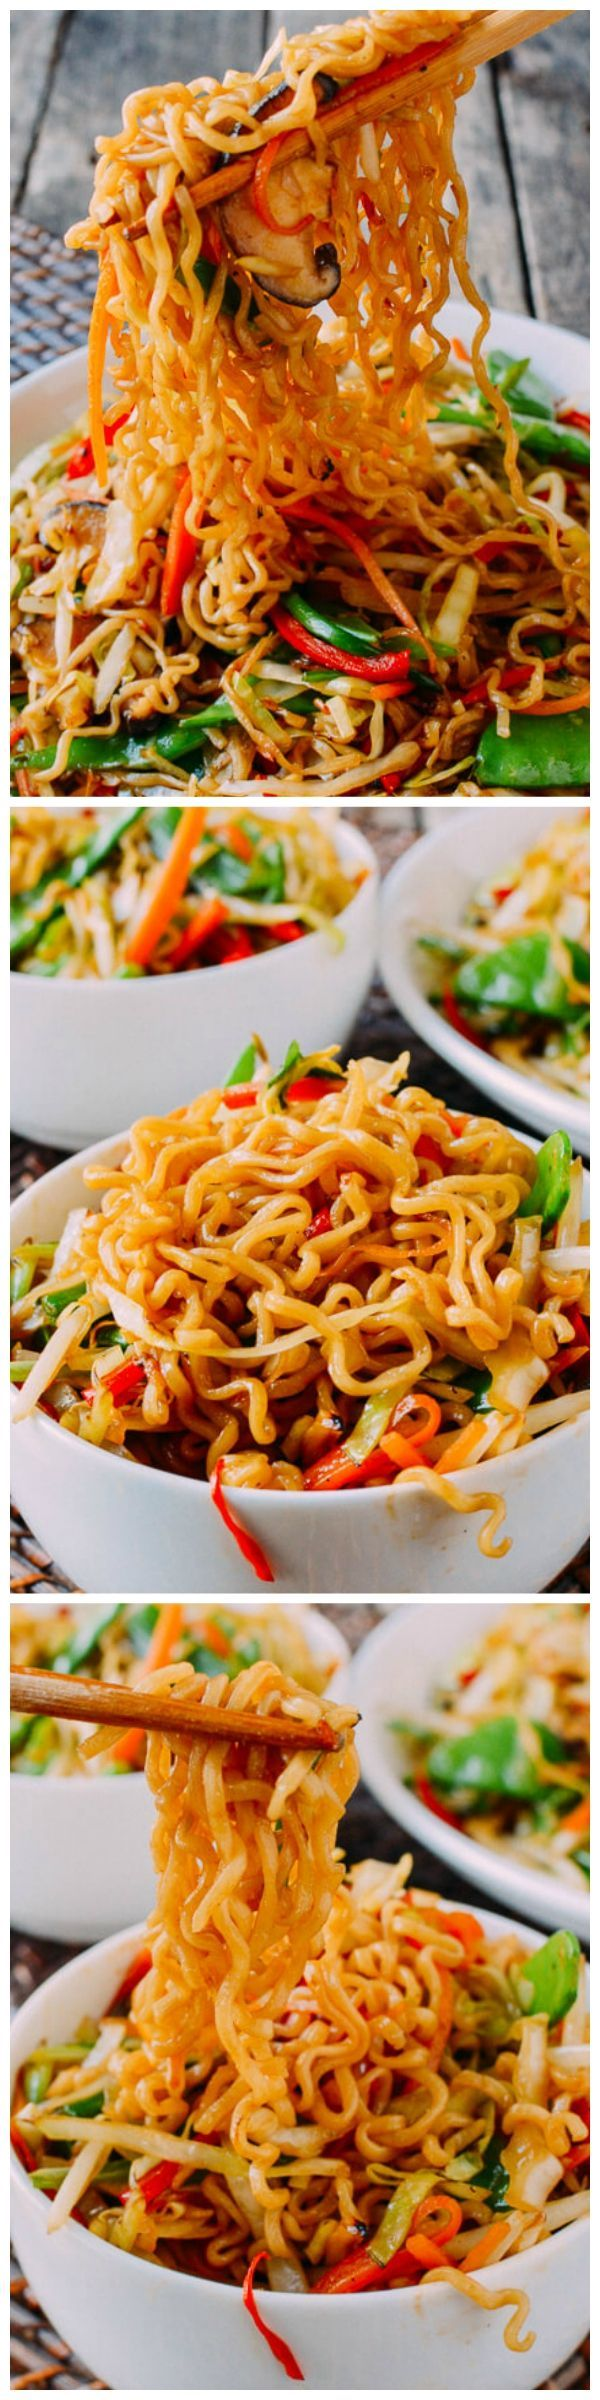 Pan-fried Vegetable Ramen - Toss the flavor packs in favor of colorful julienned veggies!